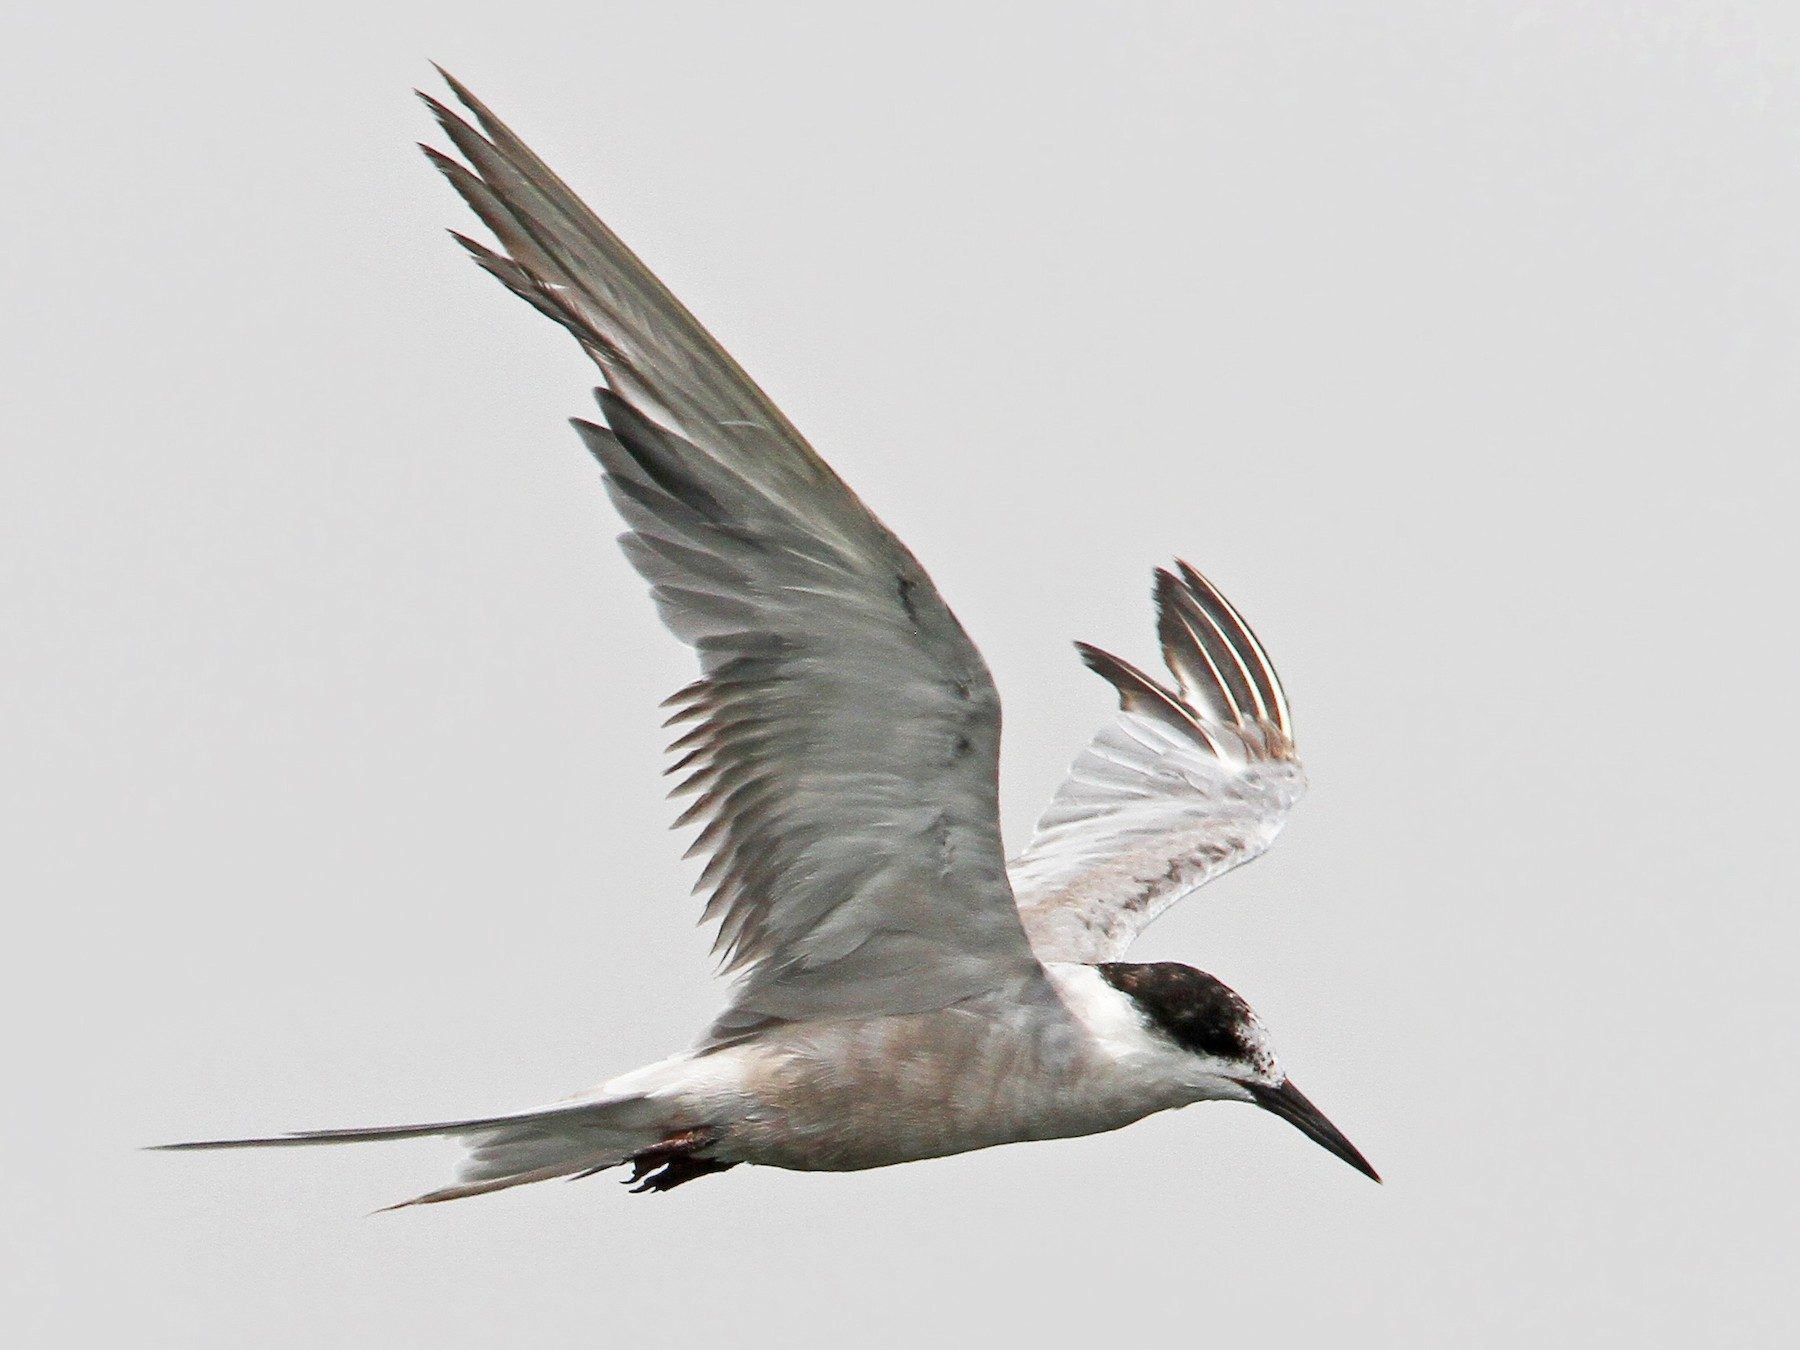 White-cheeked Tern - Christoph Moning